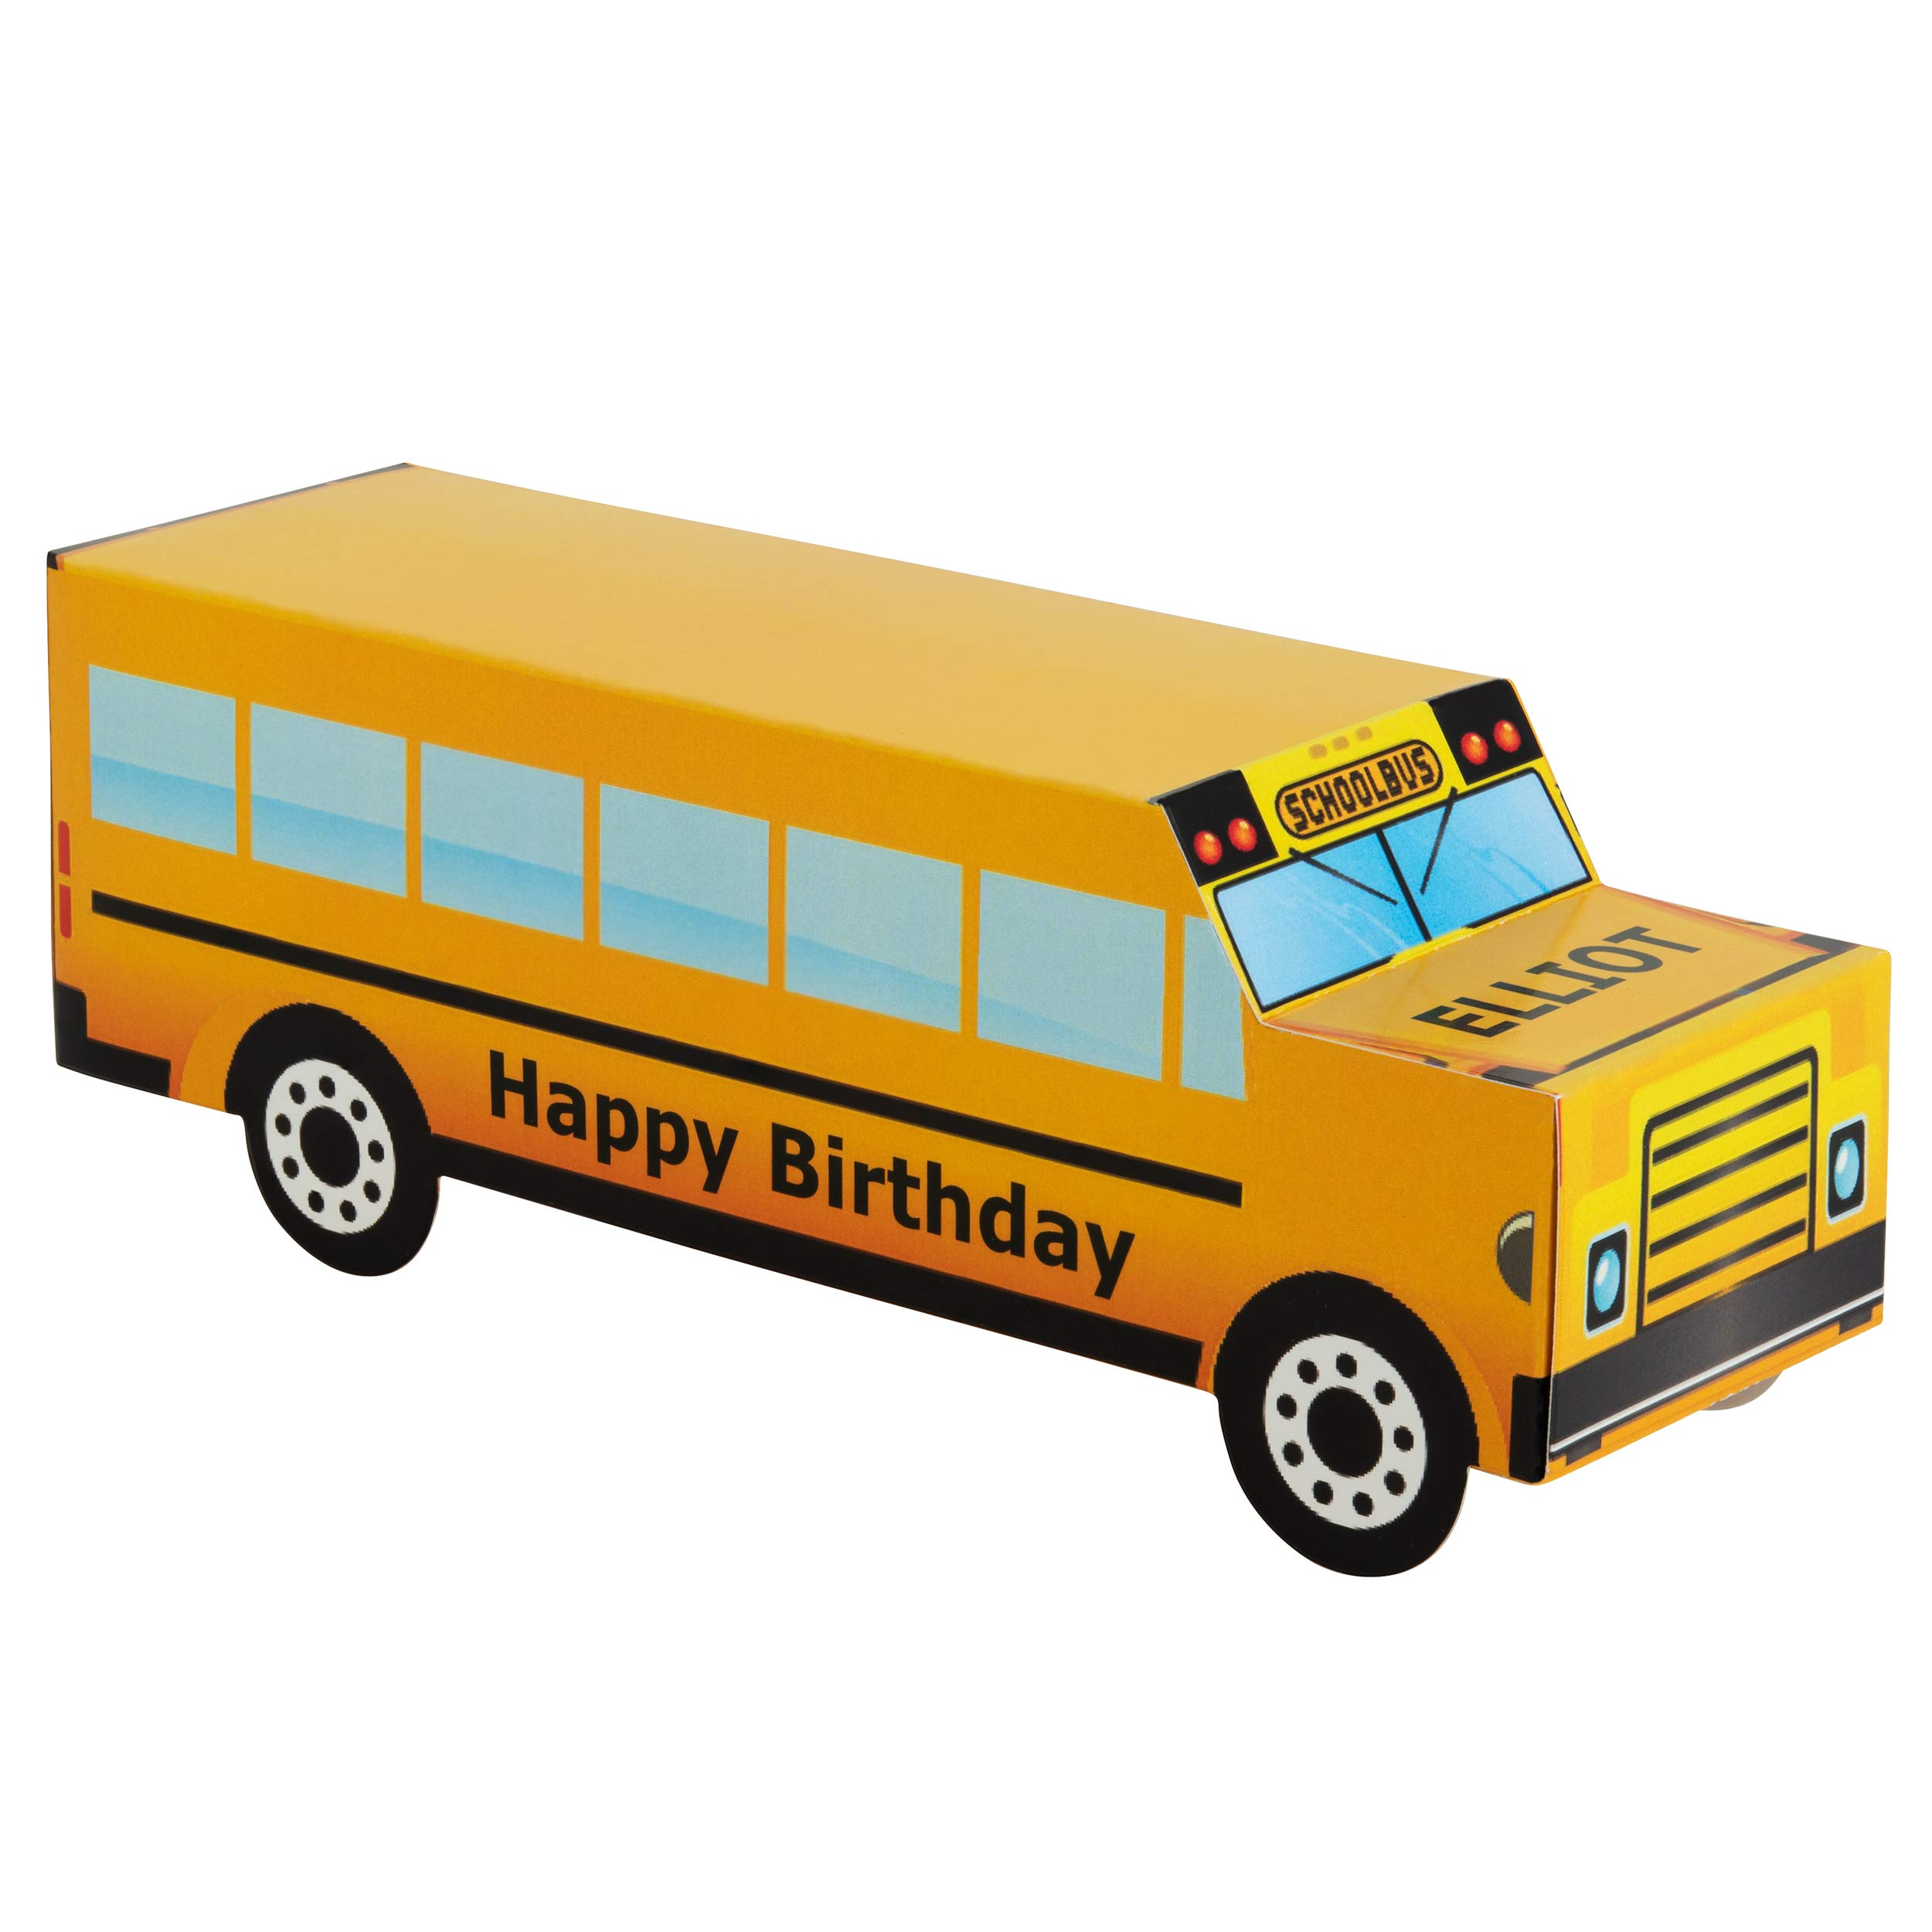 Personalized Treat Bags Gift Boxes for Kids   24 Pack Party Favor Gift Boxes   Customized Happy Birthday Yellow School Bus Boxes   Fill with Your Chocolate Treats and Prizes